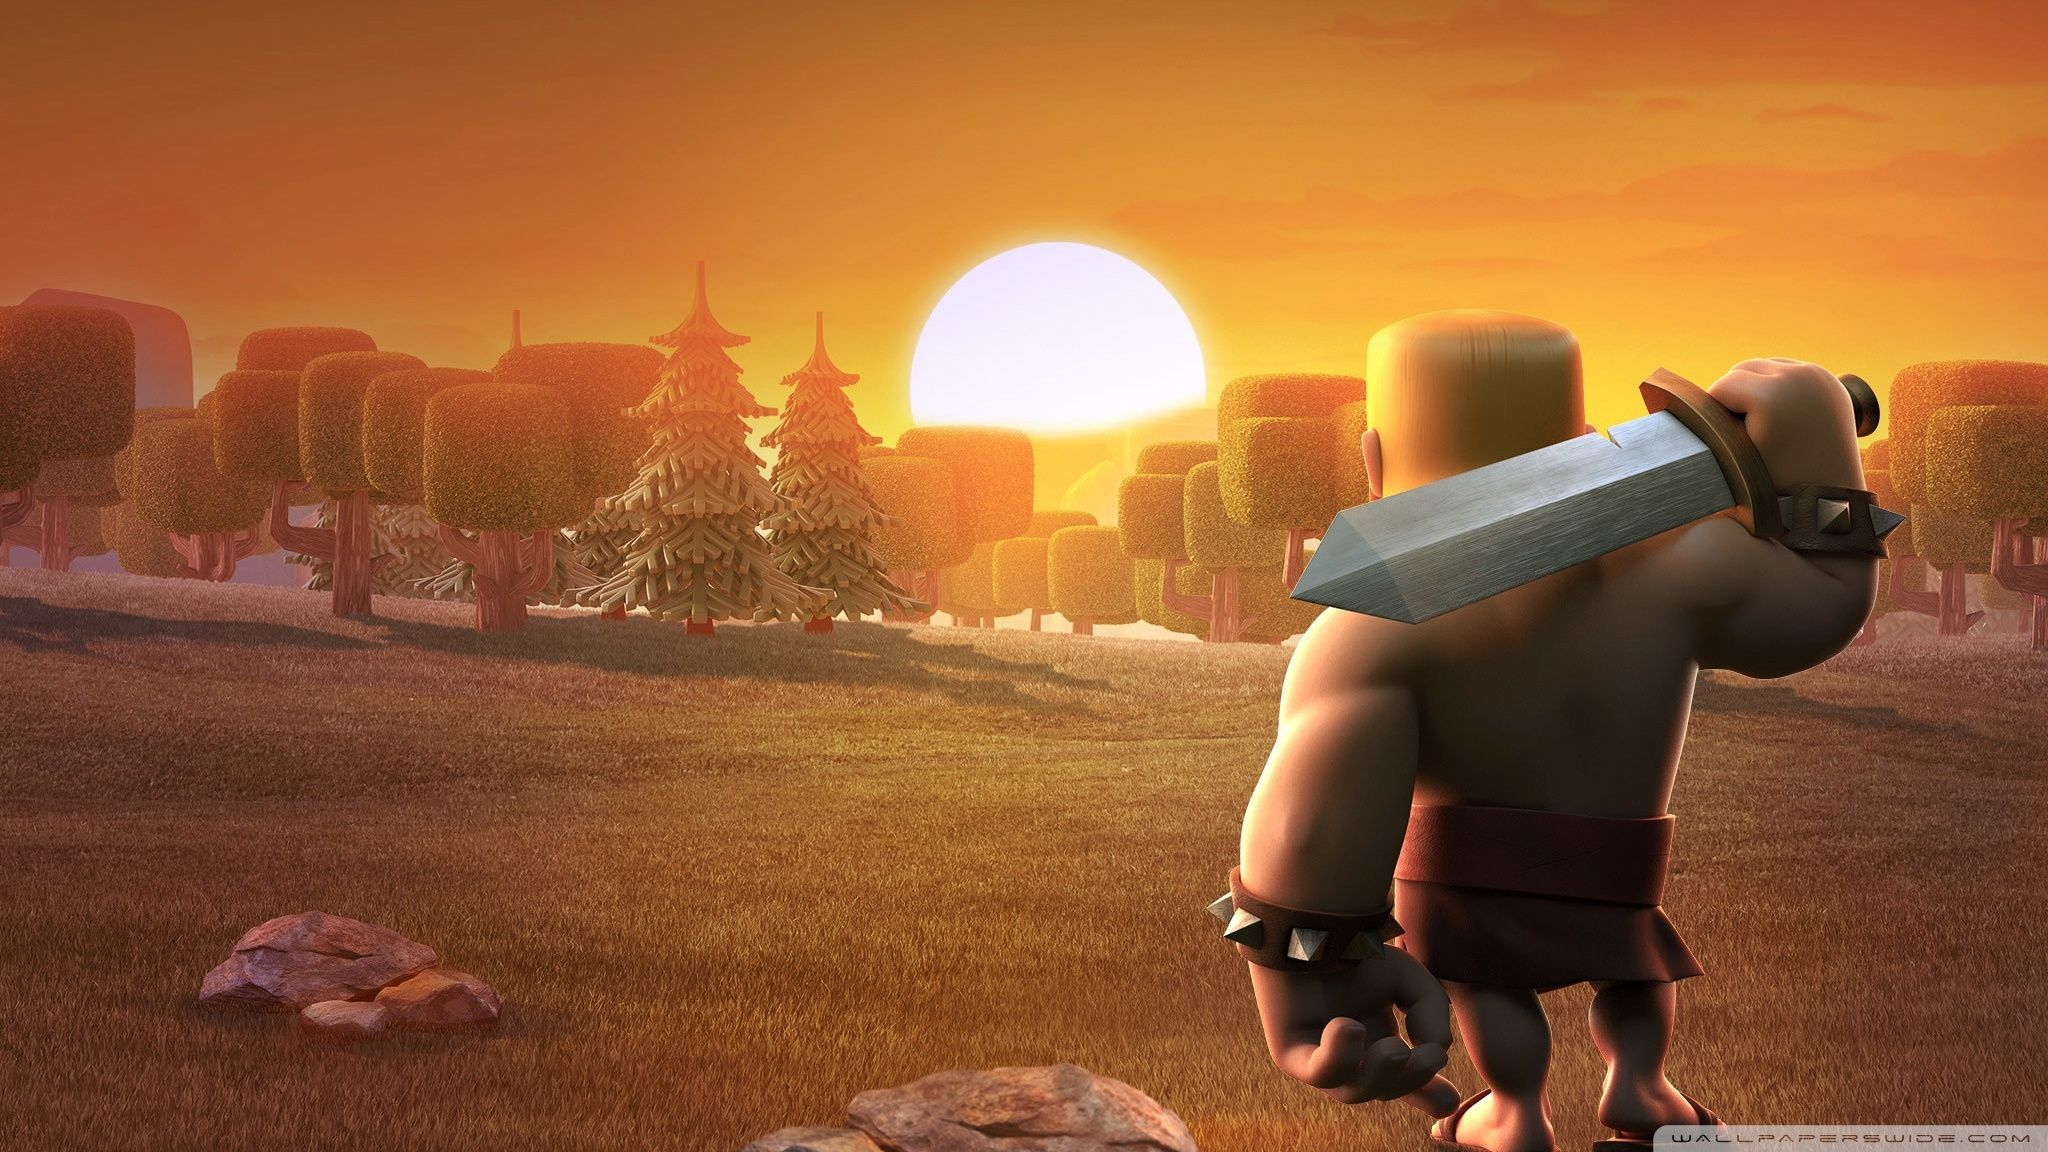 60 Wallpaper HD Android Clash of Clans COC Terbaru 2048x1152